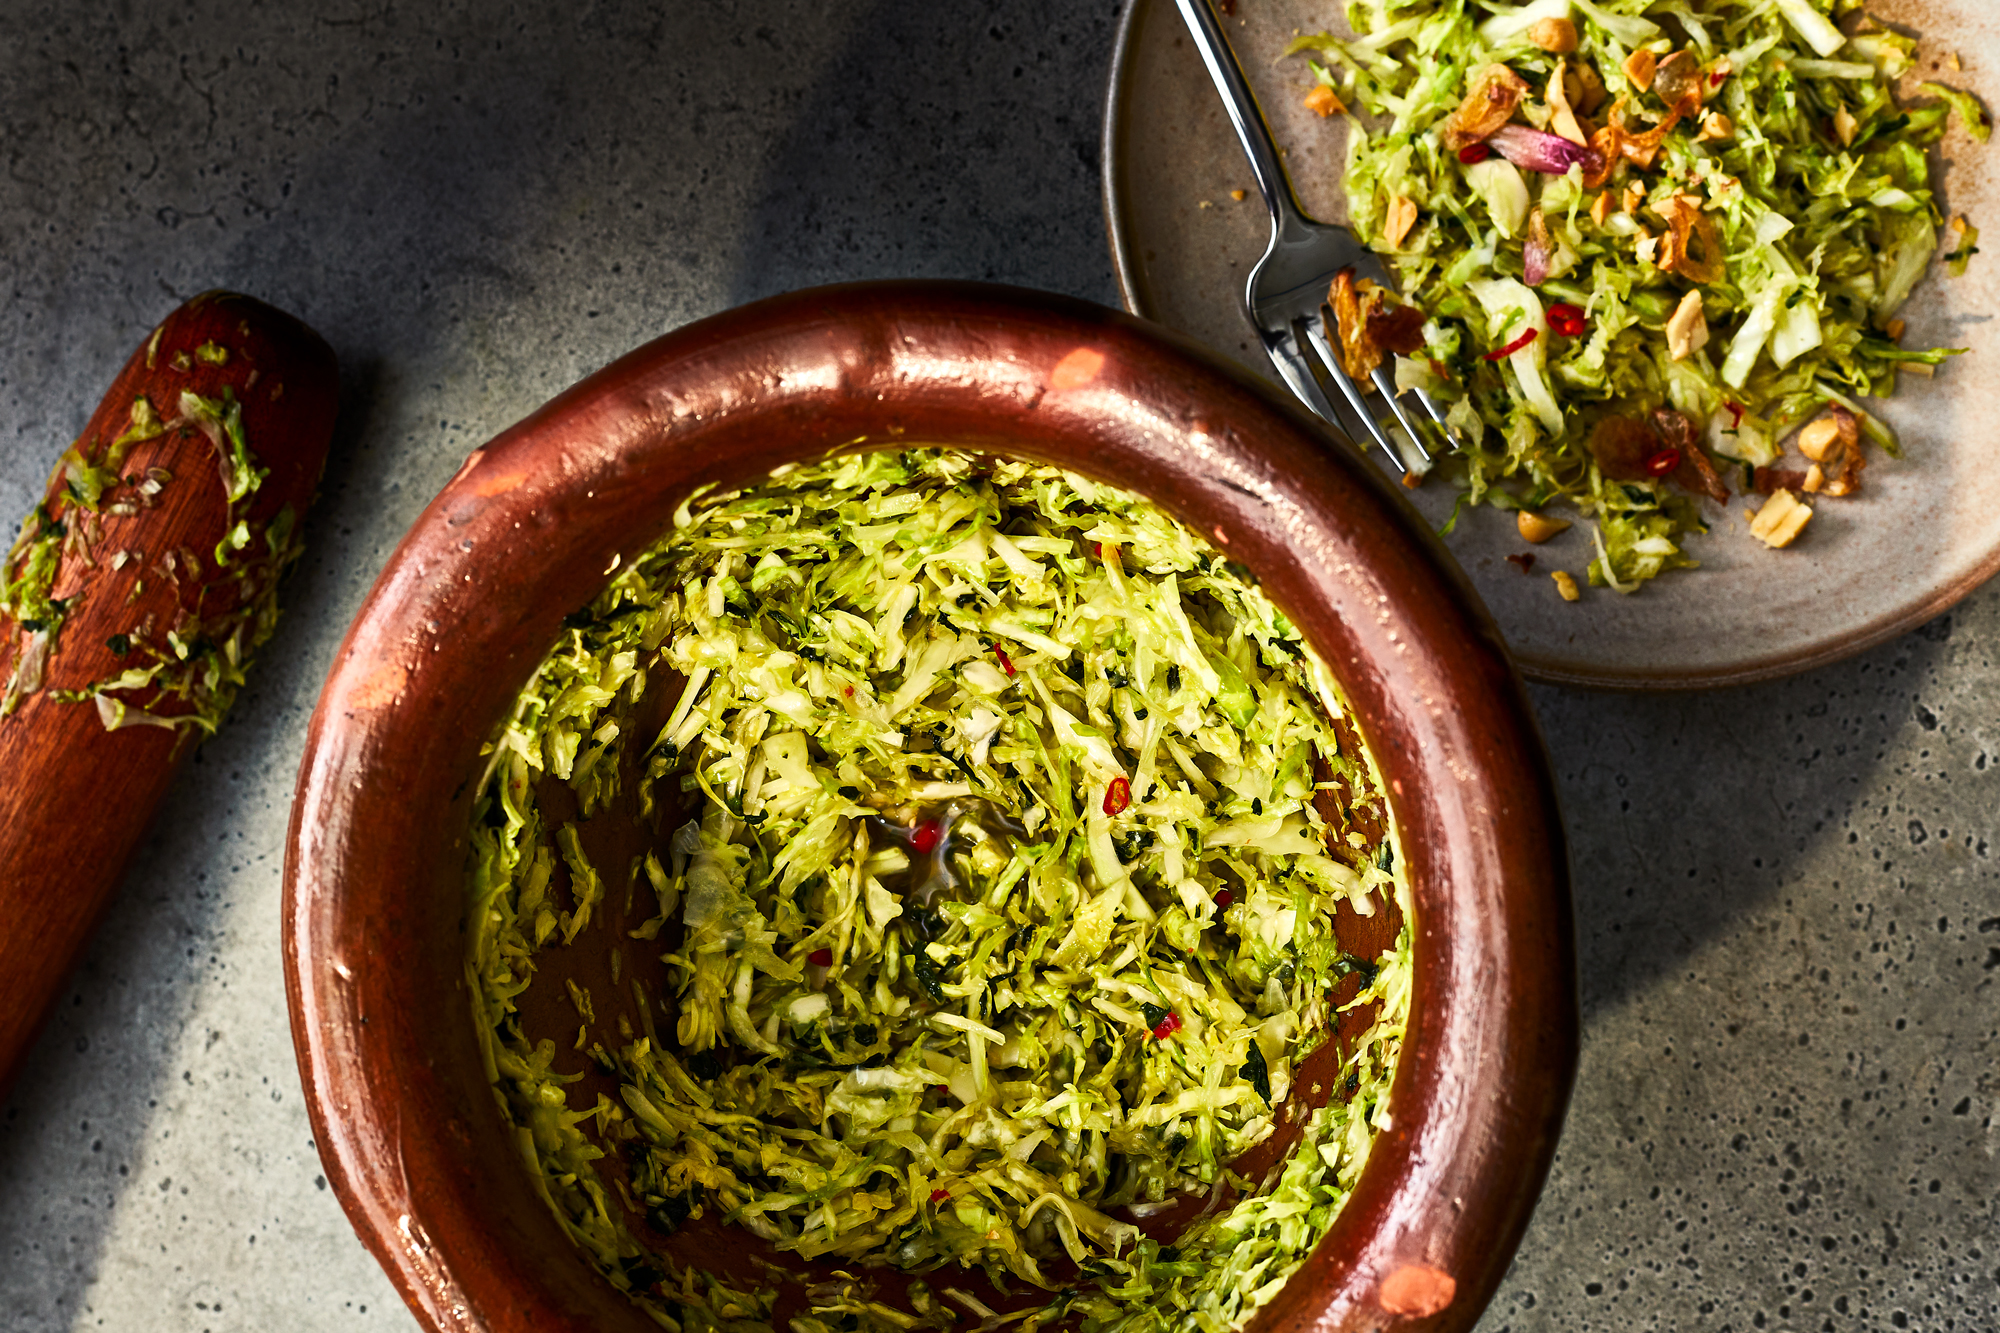 Bruised Cabbage and Herb Salad with Spicy Fish Sauce Dressing Recipe